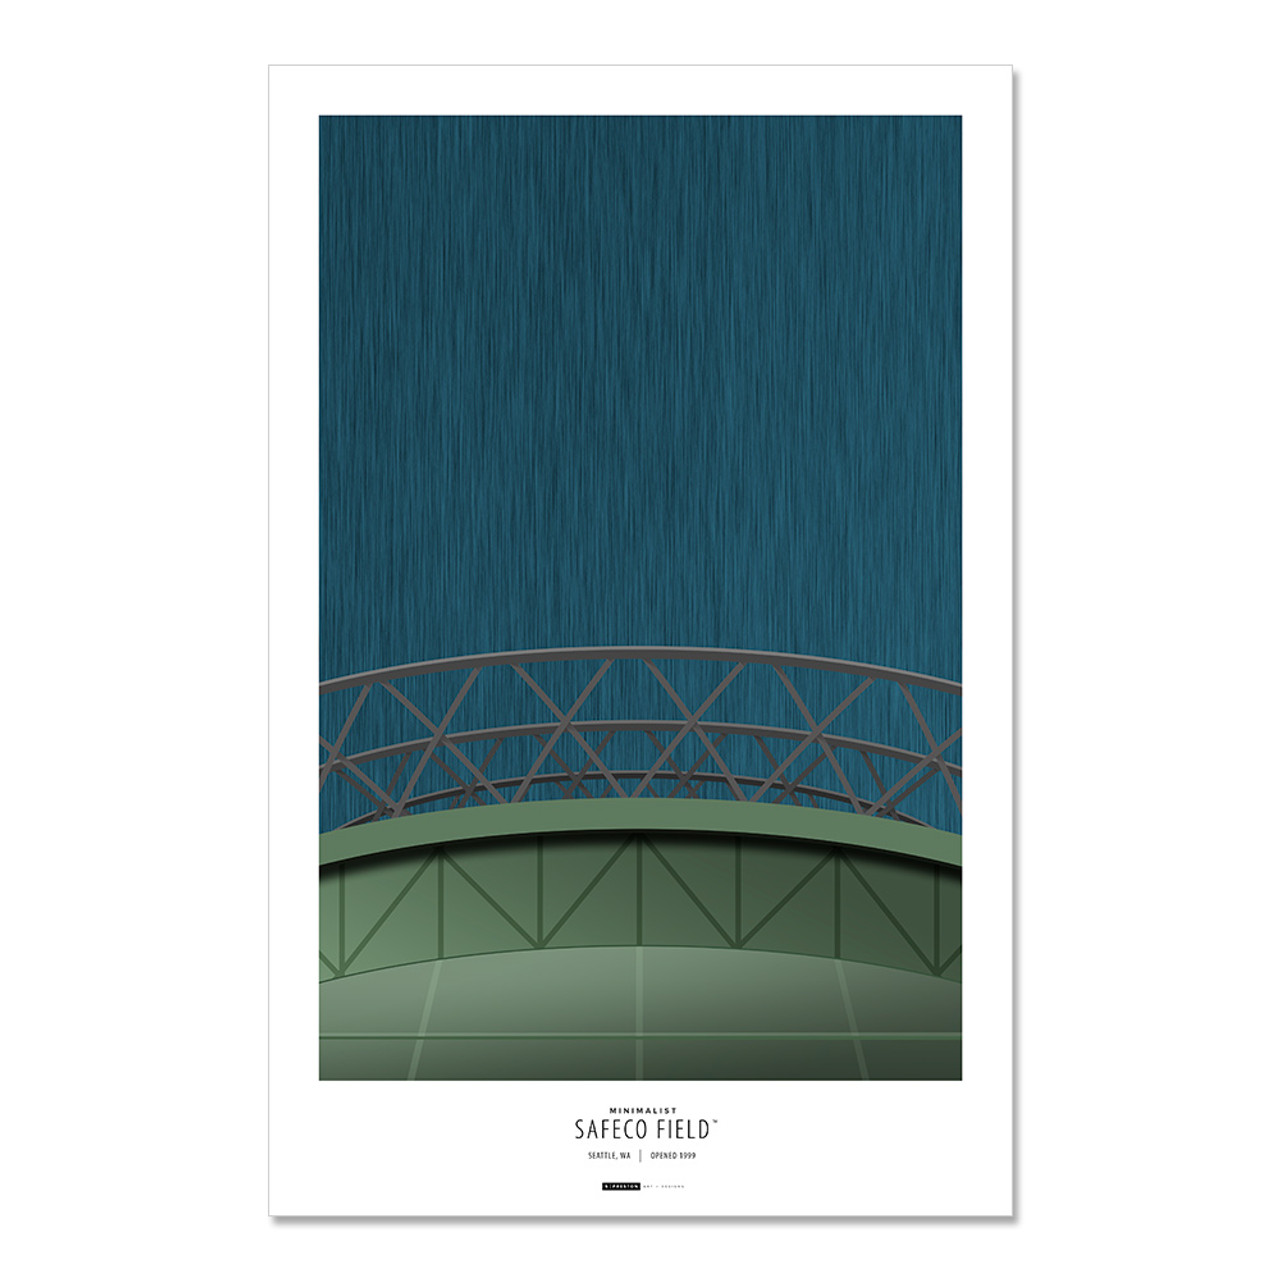 Seattle Mariners - Safeco Field Art Poster